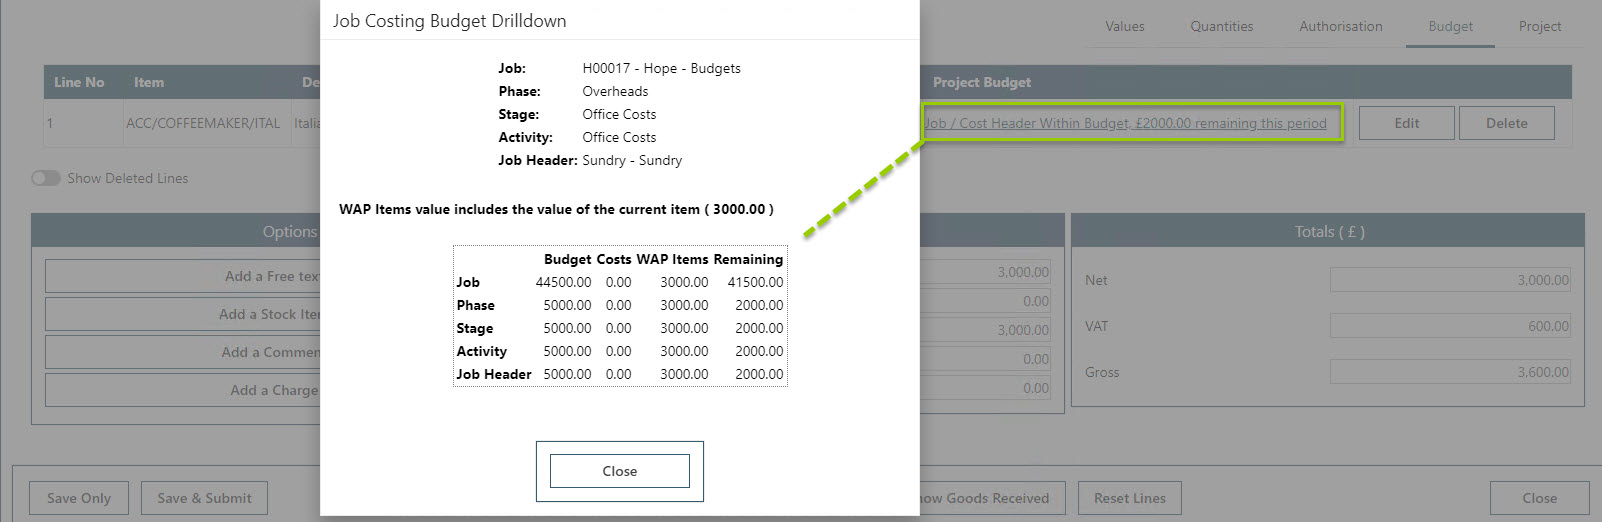 Sicon WAP Purchase Requisitions Help and User Guide - Requisition HUG Section 21.3 Image 5